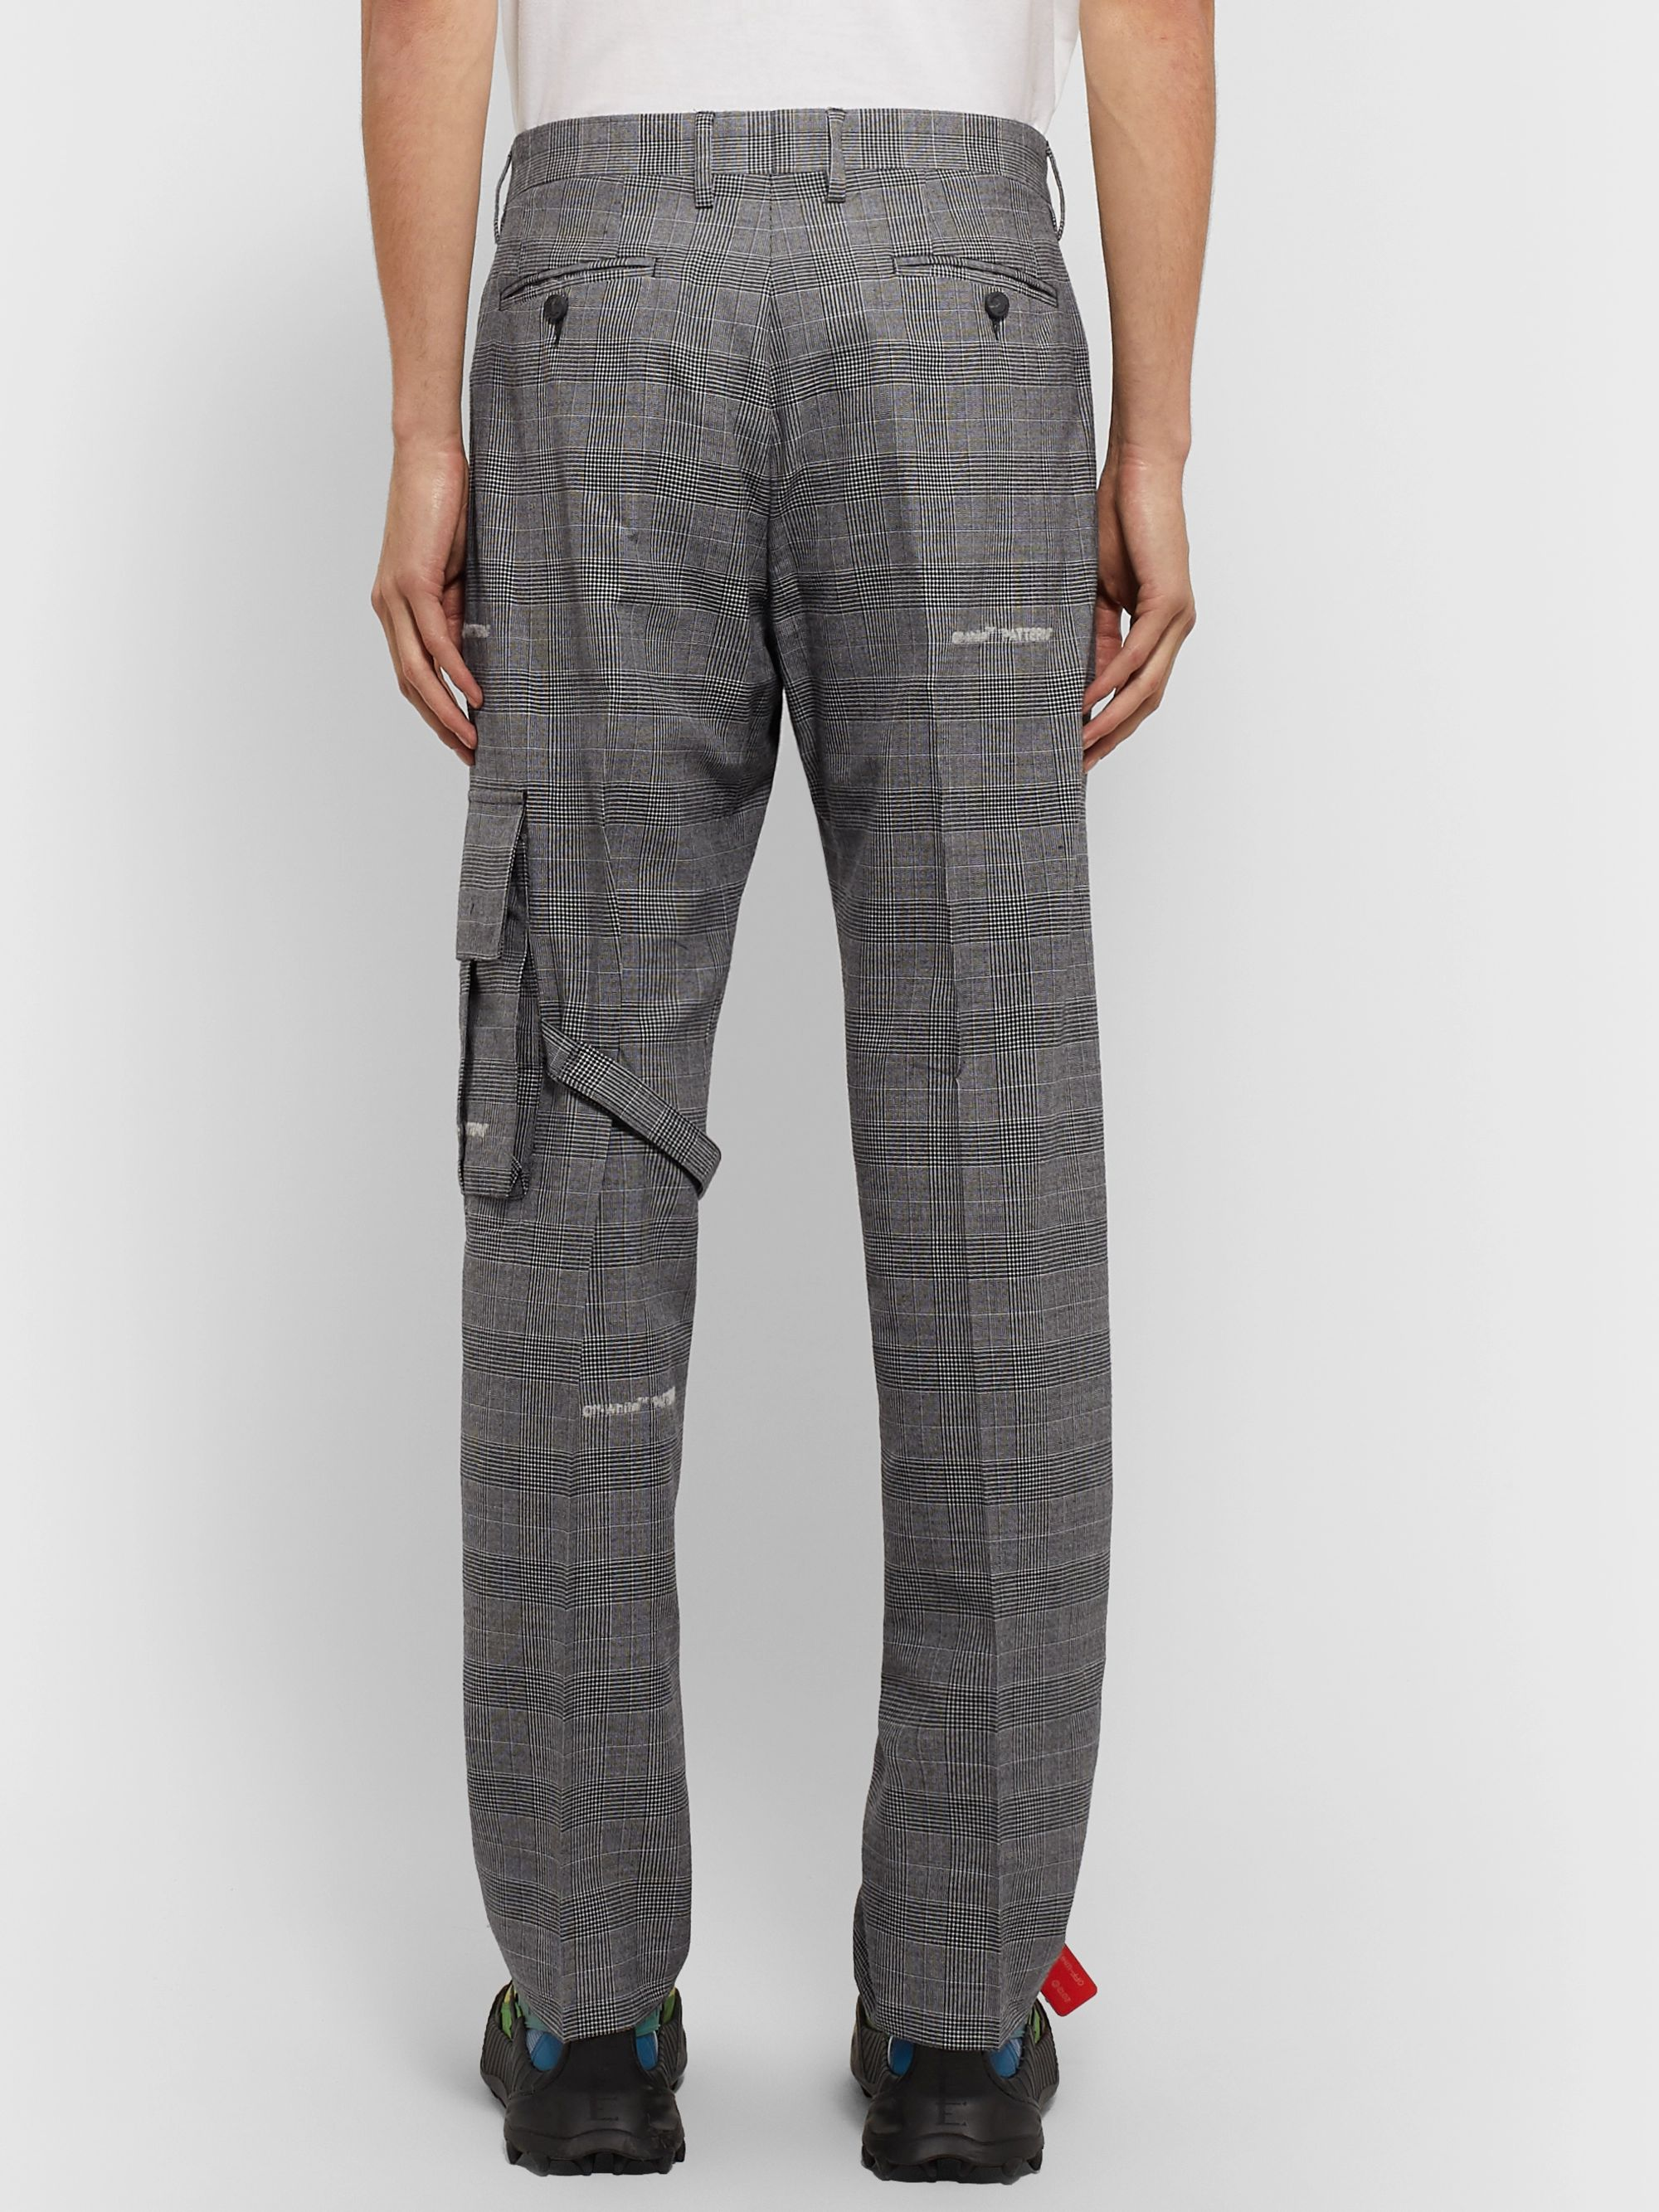 Off-White Grey Pleated Prince of Wales Checked Cotton-Blend Suit Trousers